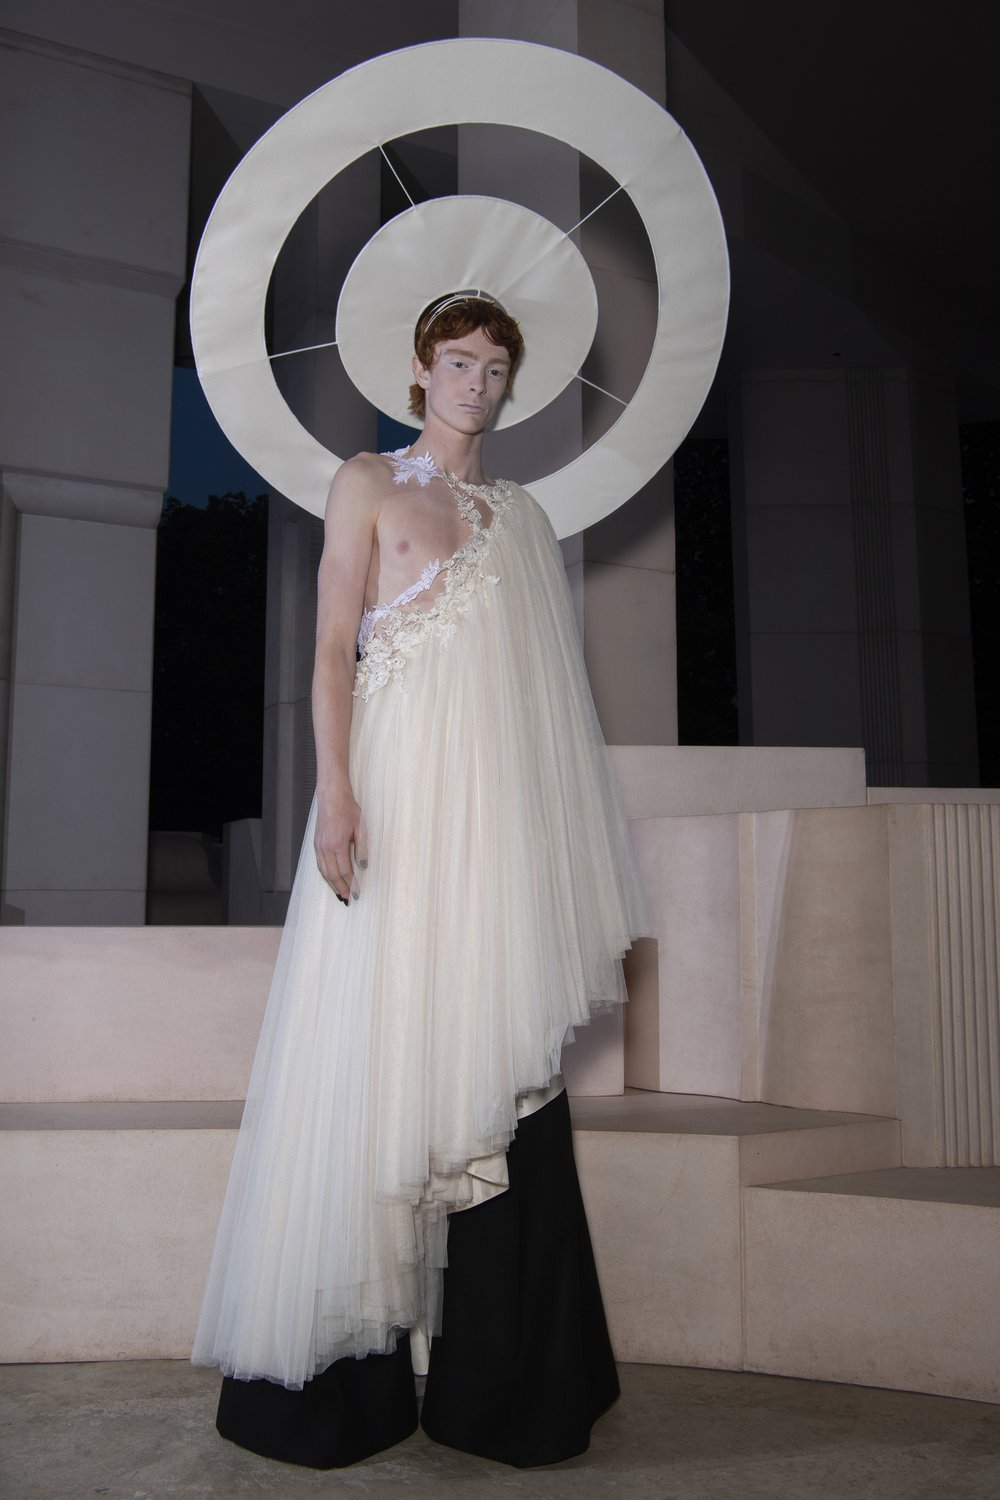 A model wears a demi-couture bridal lace toga made from Oxfam pre-loved bridal wear over black flares and a white halo.